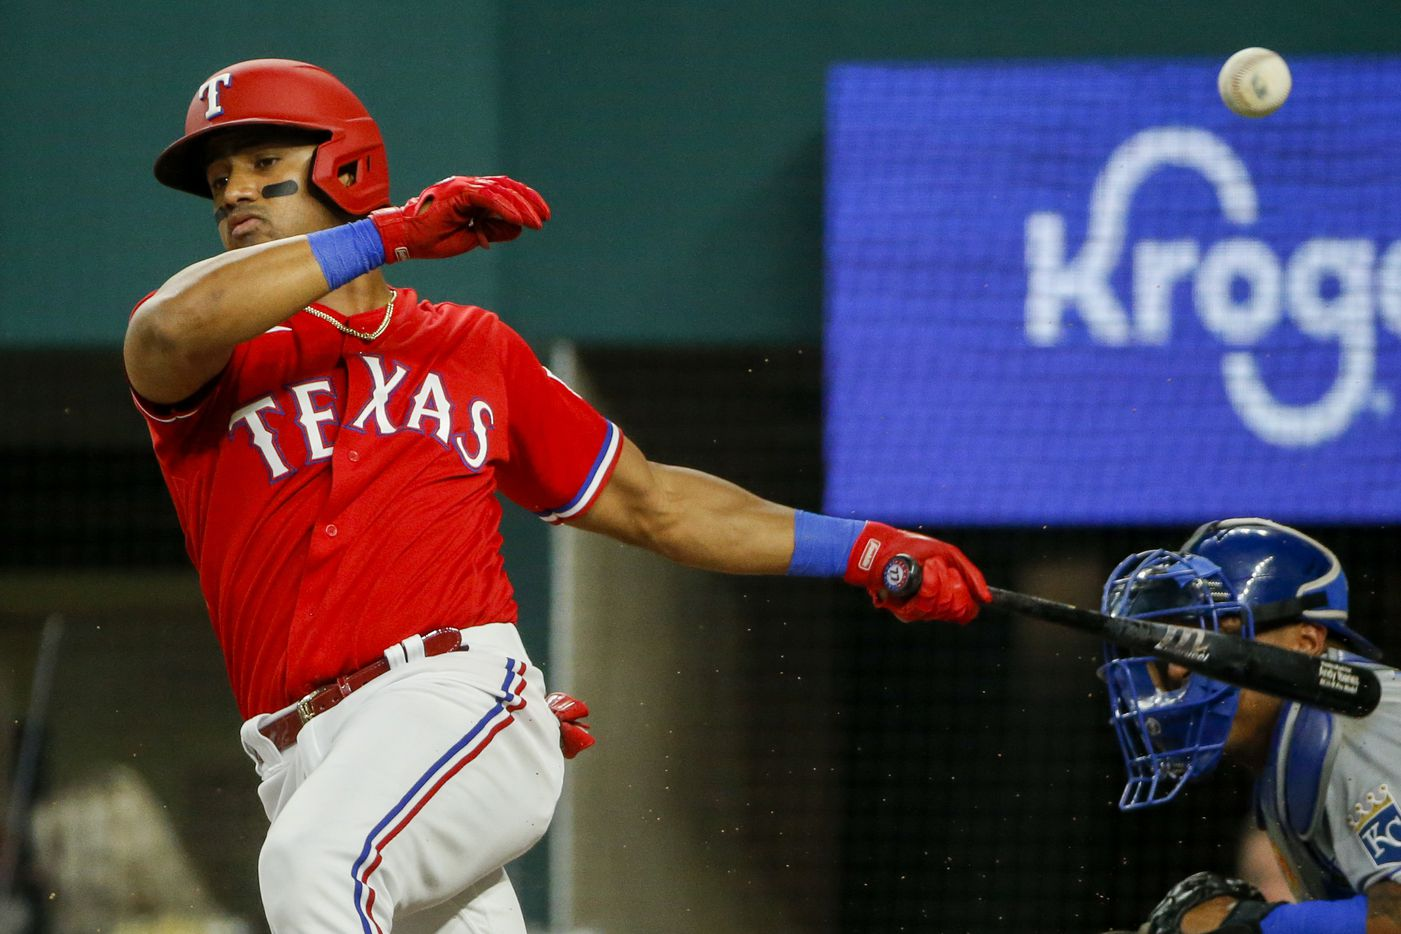 Texas Rangers first baseman Andy Ibanez (77) fouls off a pitch during the second inning against the Kansas City Royals at Globe Life Field on Friday, June 25, 2021, in Arlington. (Elias Valverde II/The Dallas Morning News)